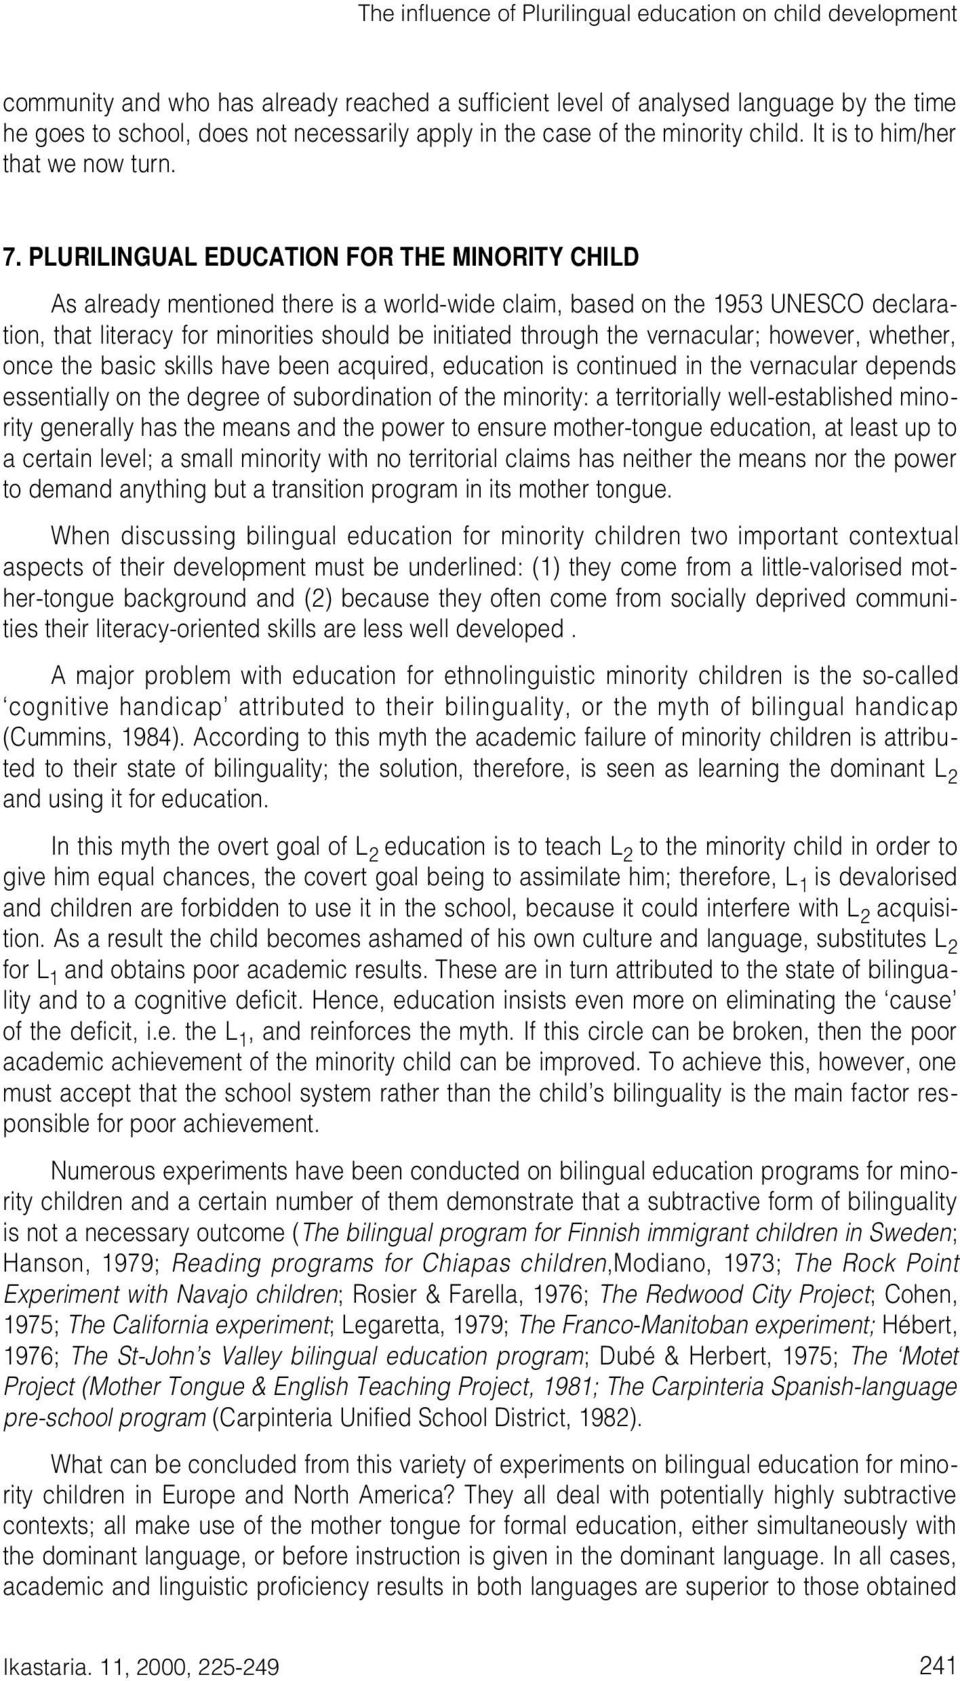 PLURILINGUAL EDUCATION FOR THE MINORITY CHILD As already mentioned there is a world-wide claim, based on the 1953 UNESCO declaration, that literacy for minorities should be initiated through the